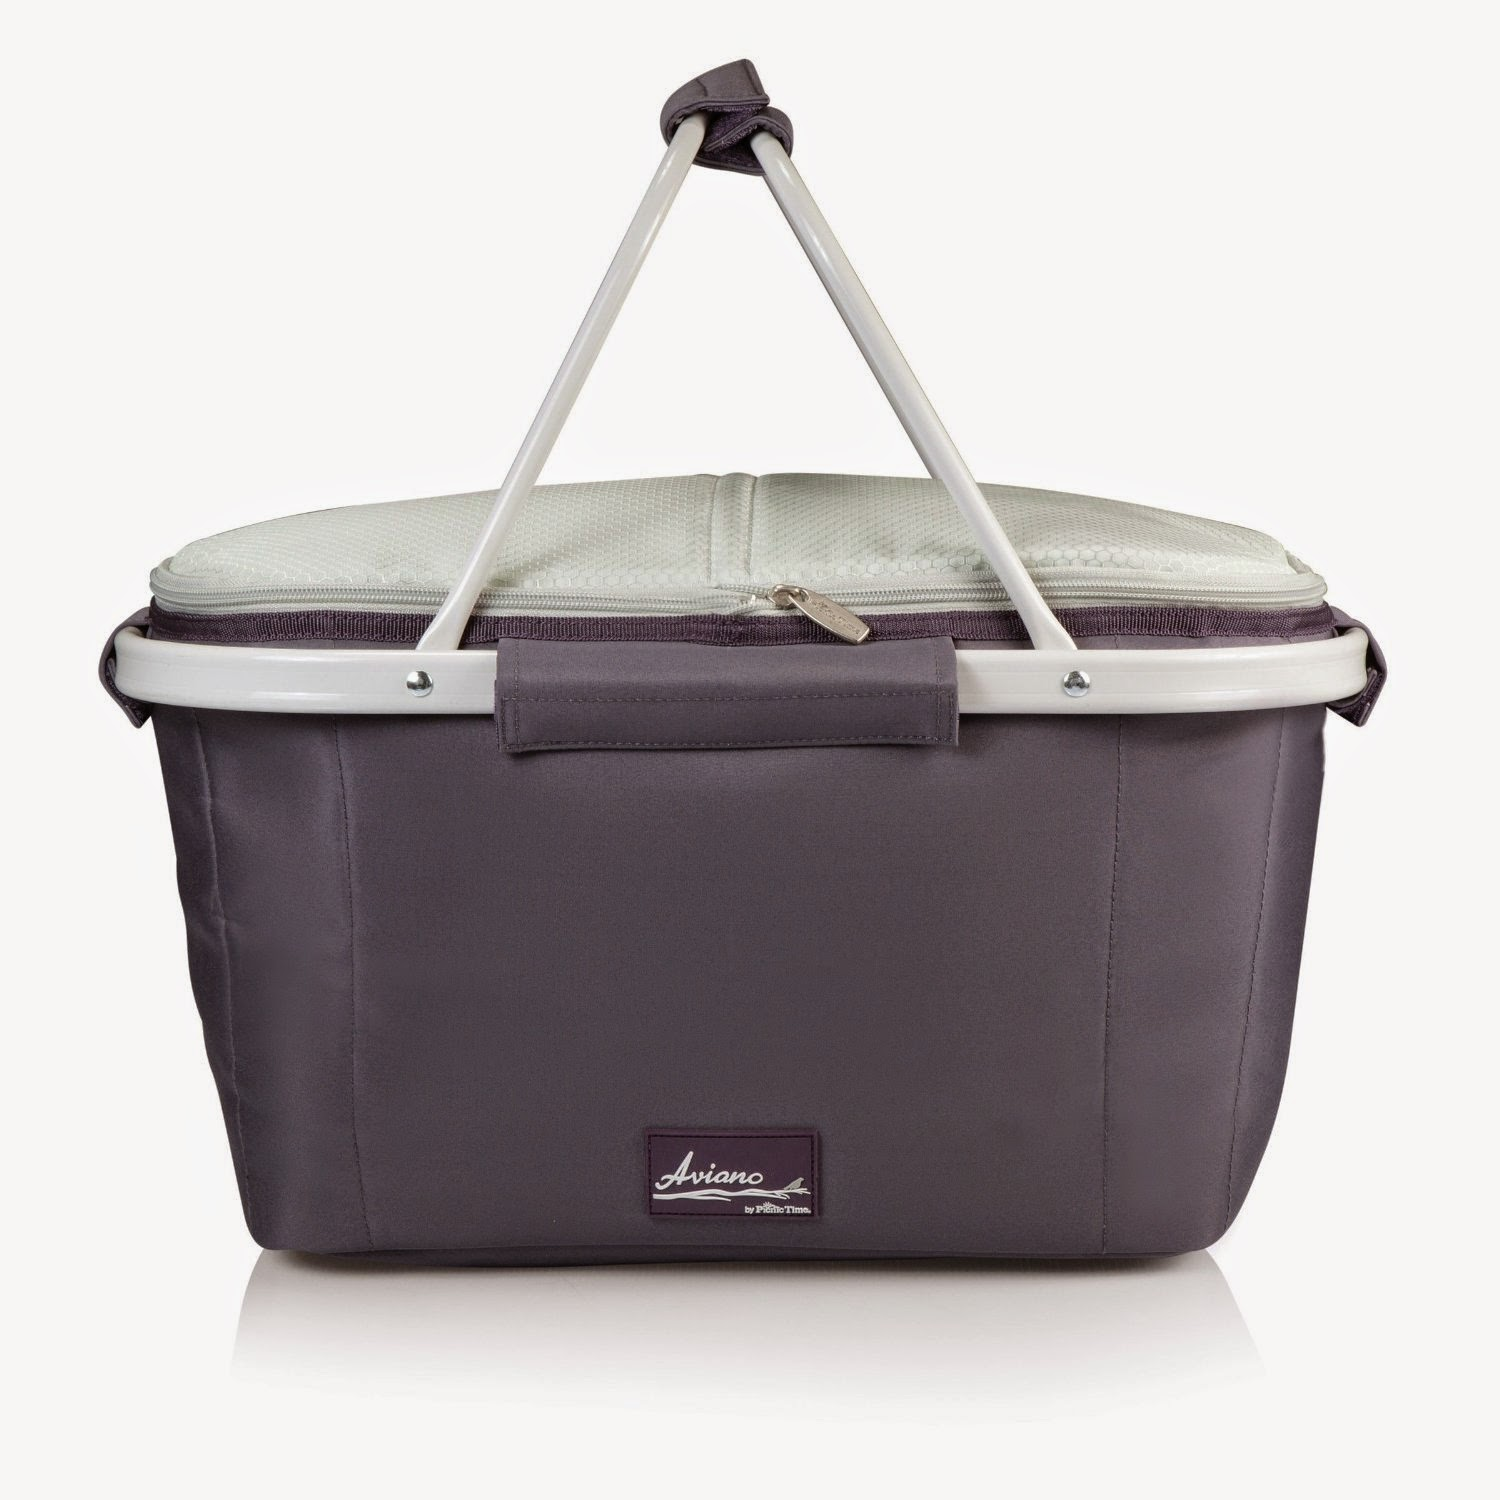 Collapsible Cooler Collapsible Basket Cooler